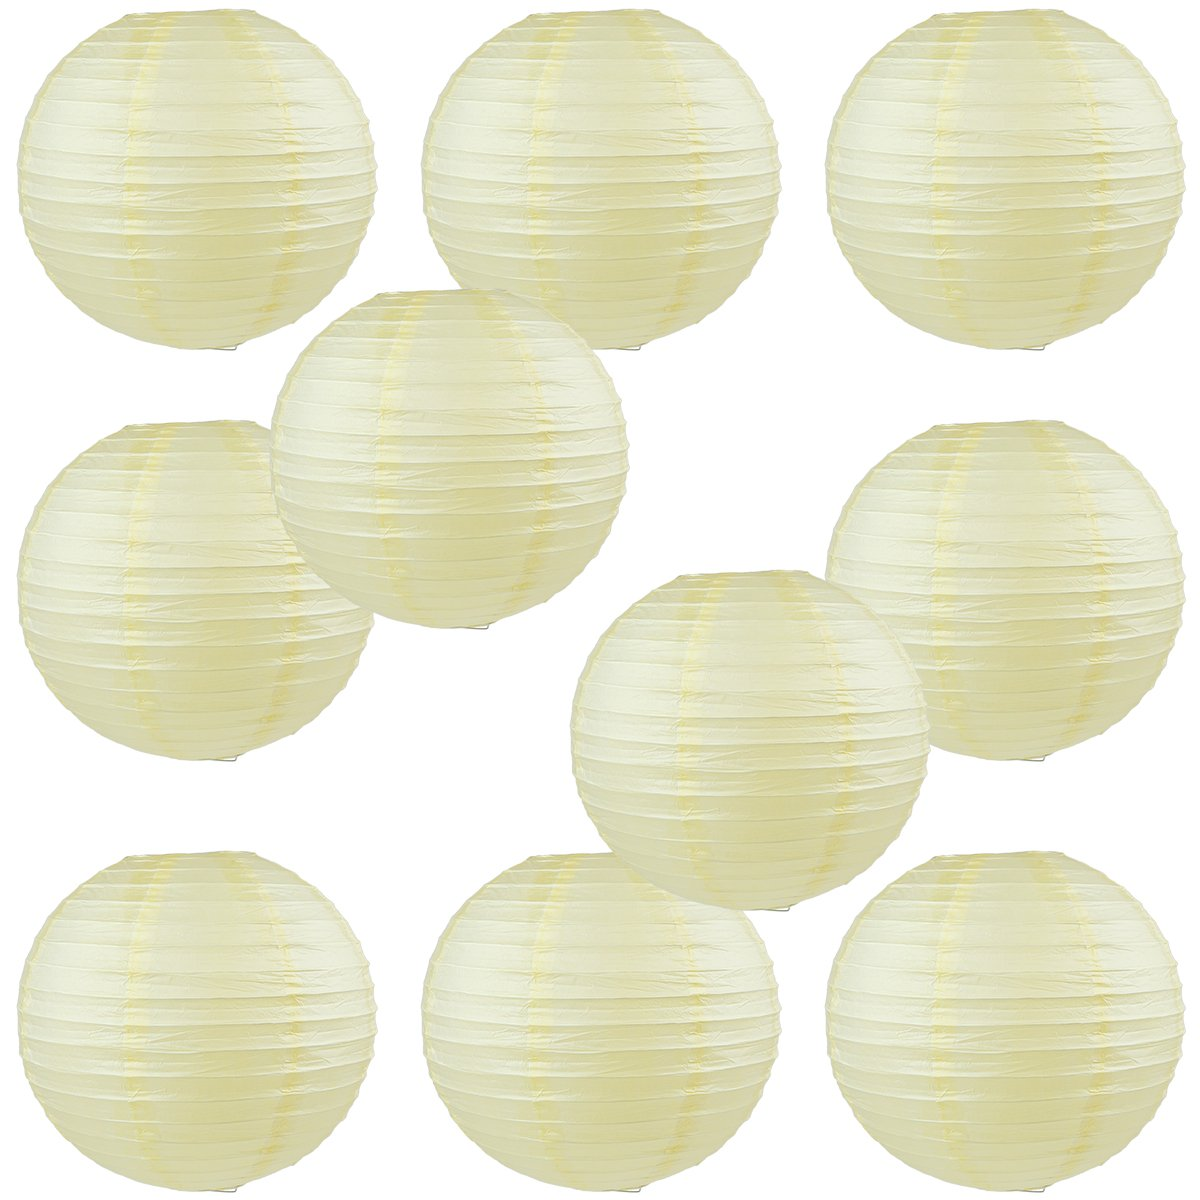 WYZworks Round Paper Lanterns 10 Pack (Ivory Cream, 10'') - with 8'', 10'', 12'', 14'', 16'' option